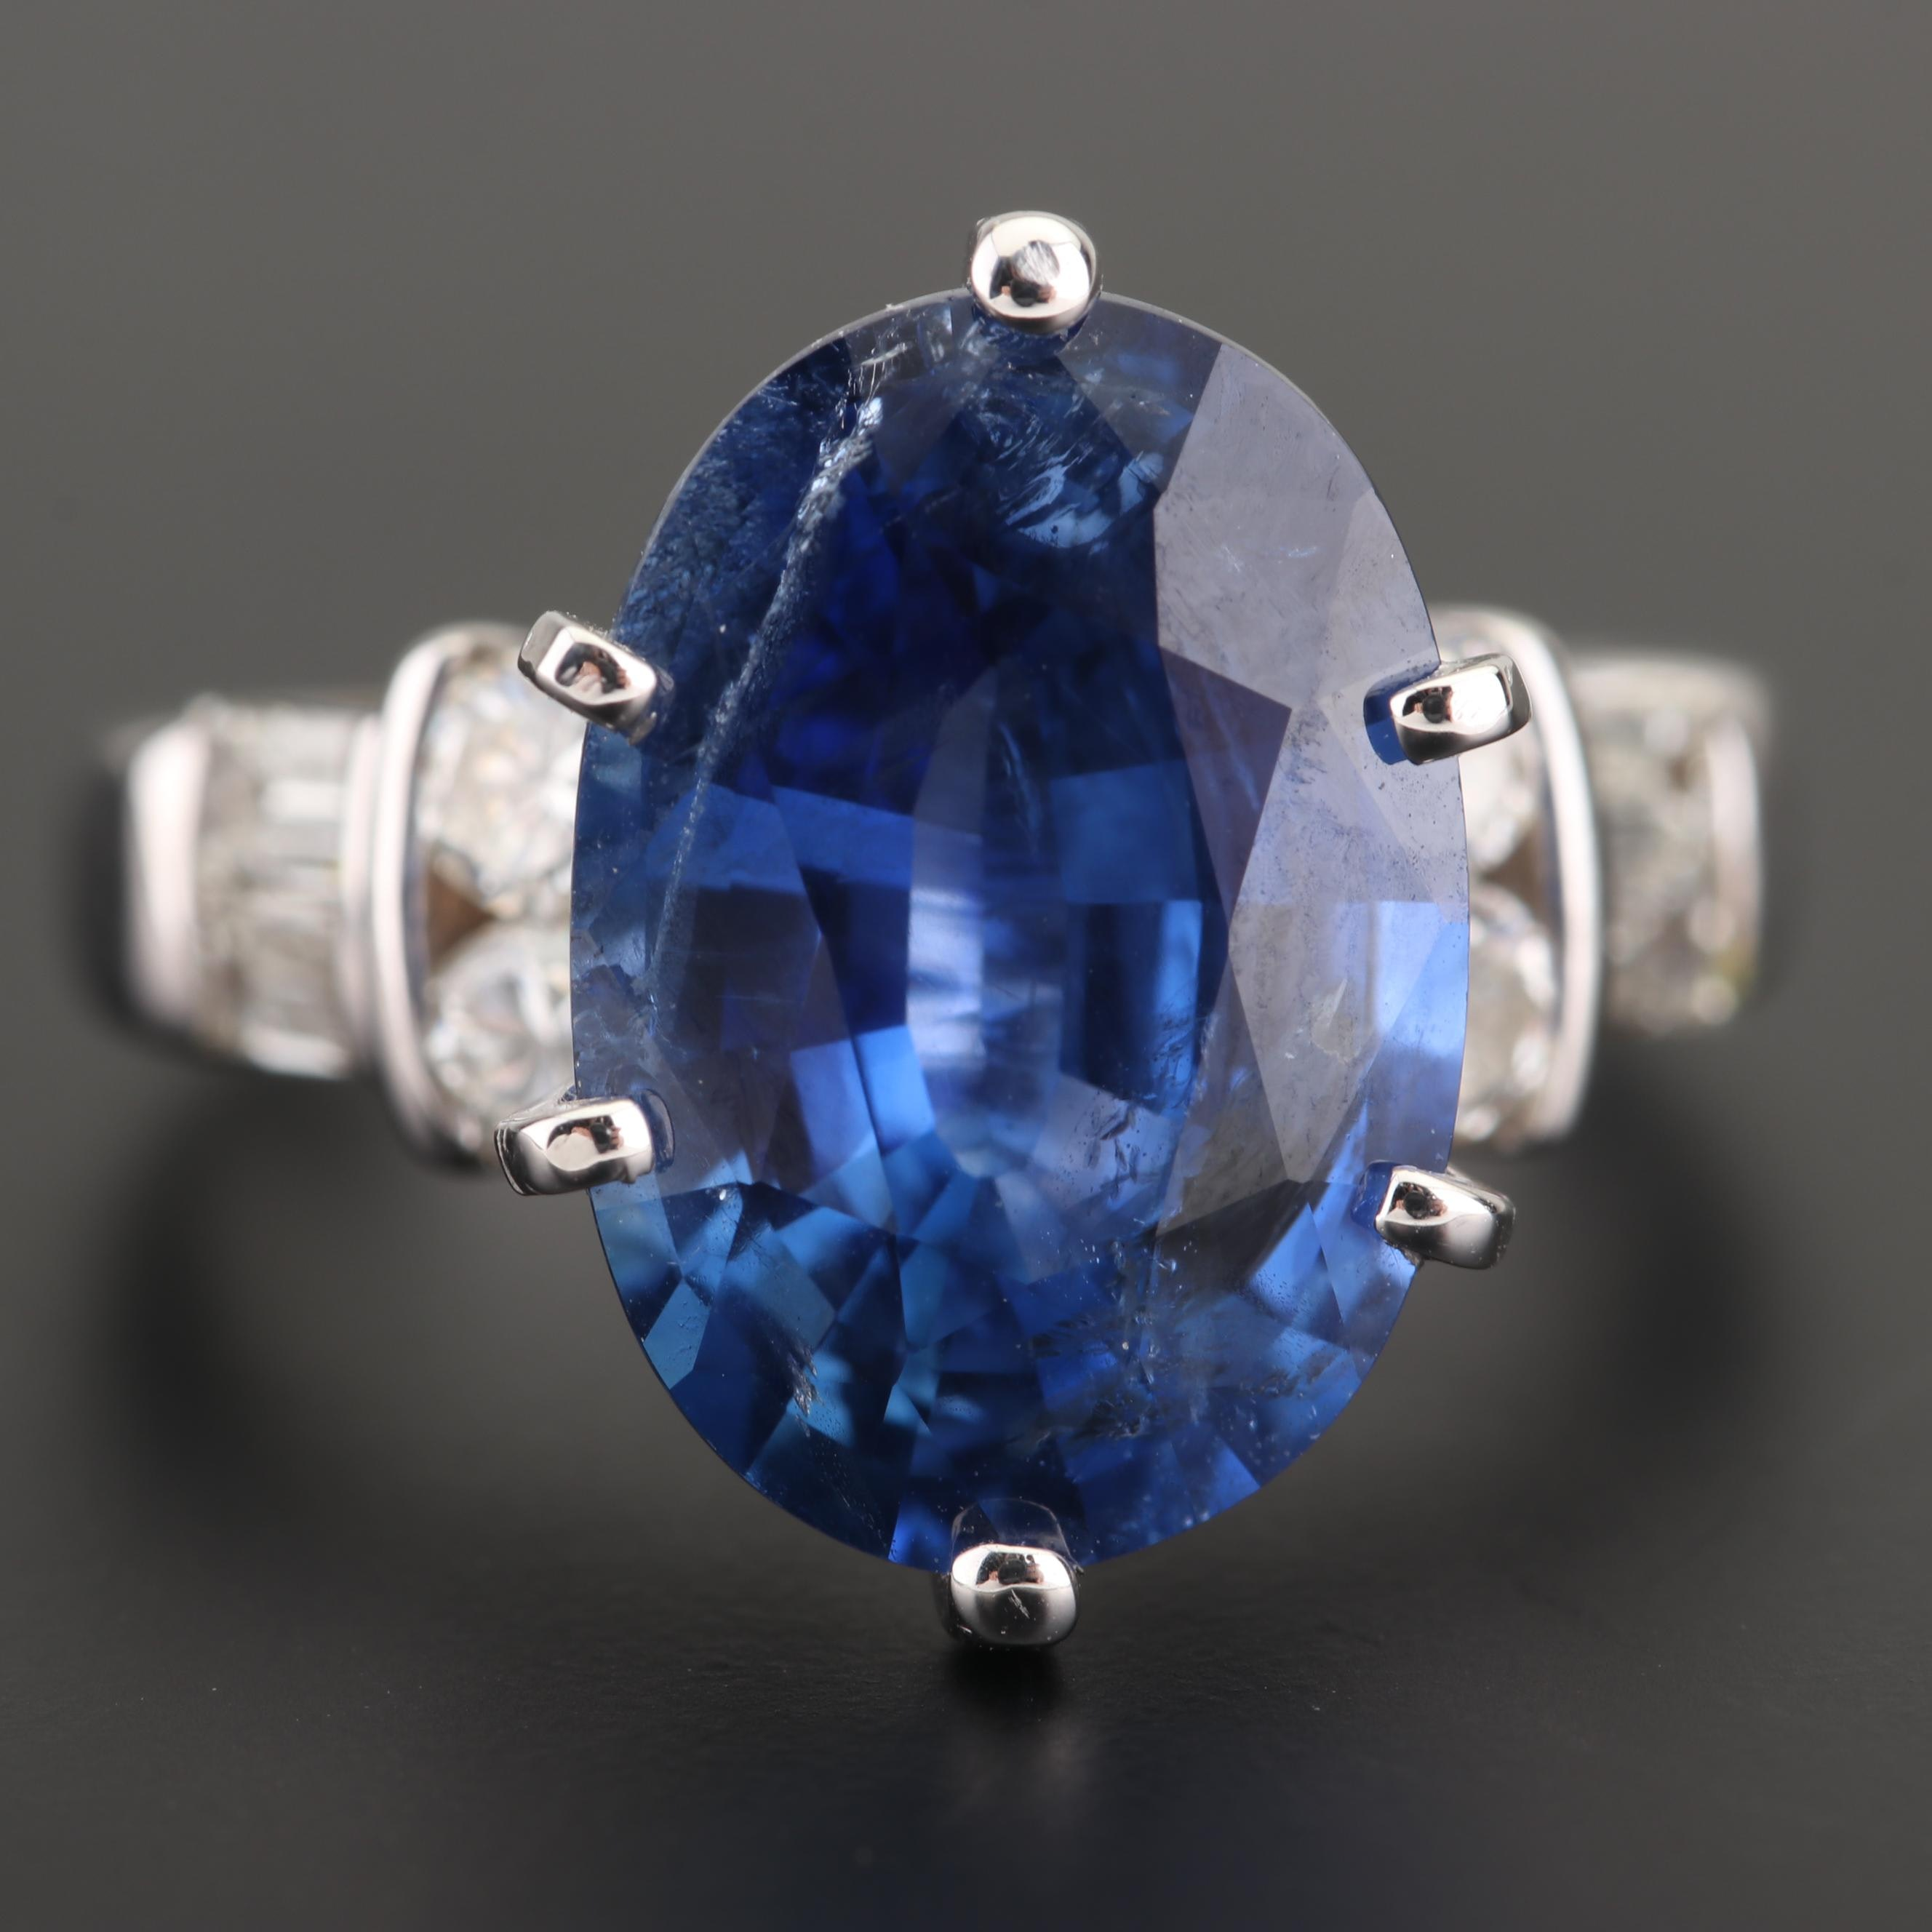 14K White Gold 5.86 CT Sri Lankan Sapphire and Diamond Ring with GIA Report